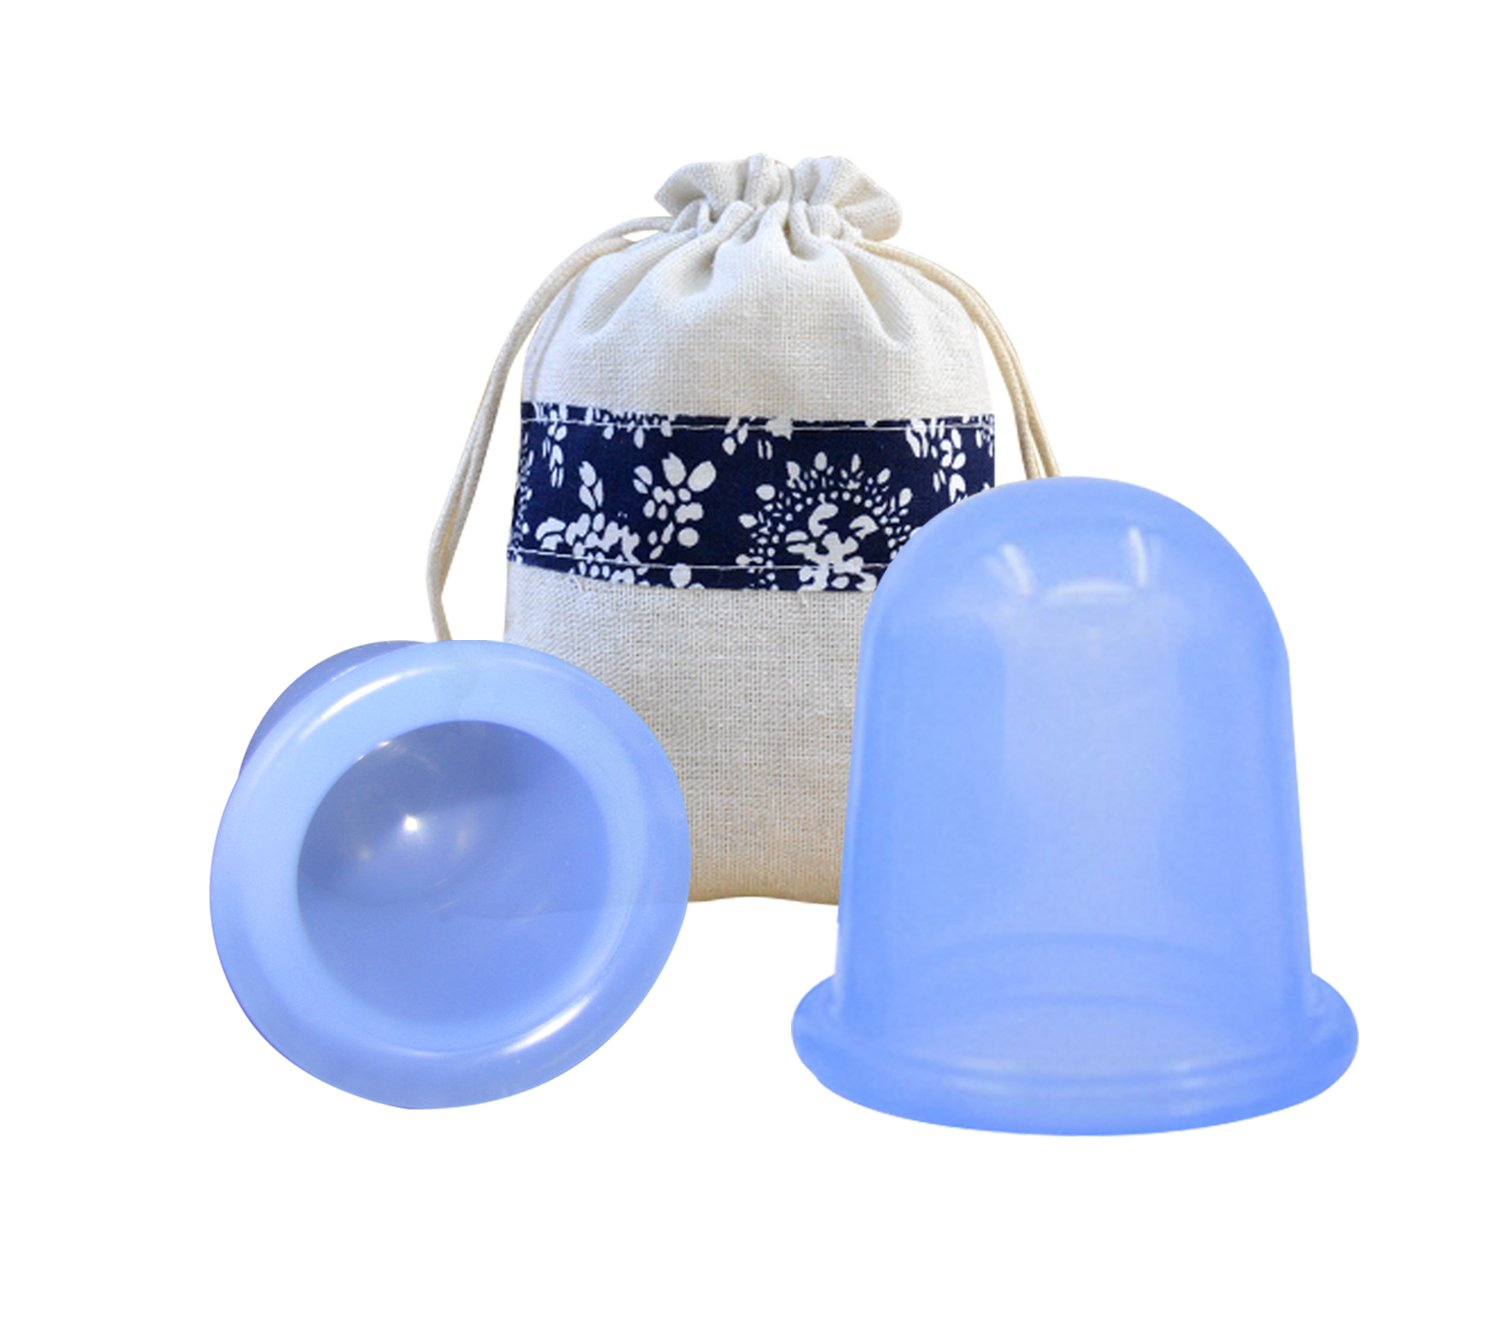 Anti Cellulite Cup for Cellulite Blaster Massage - Silicone Fascia Vacuum Suction Cupping for Muscle, Nerve, Joint Pain Relief